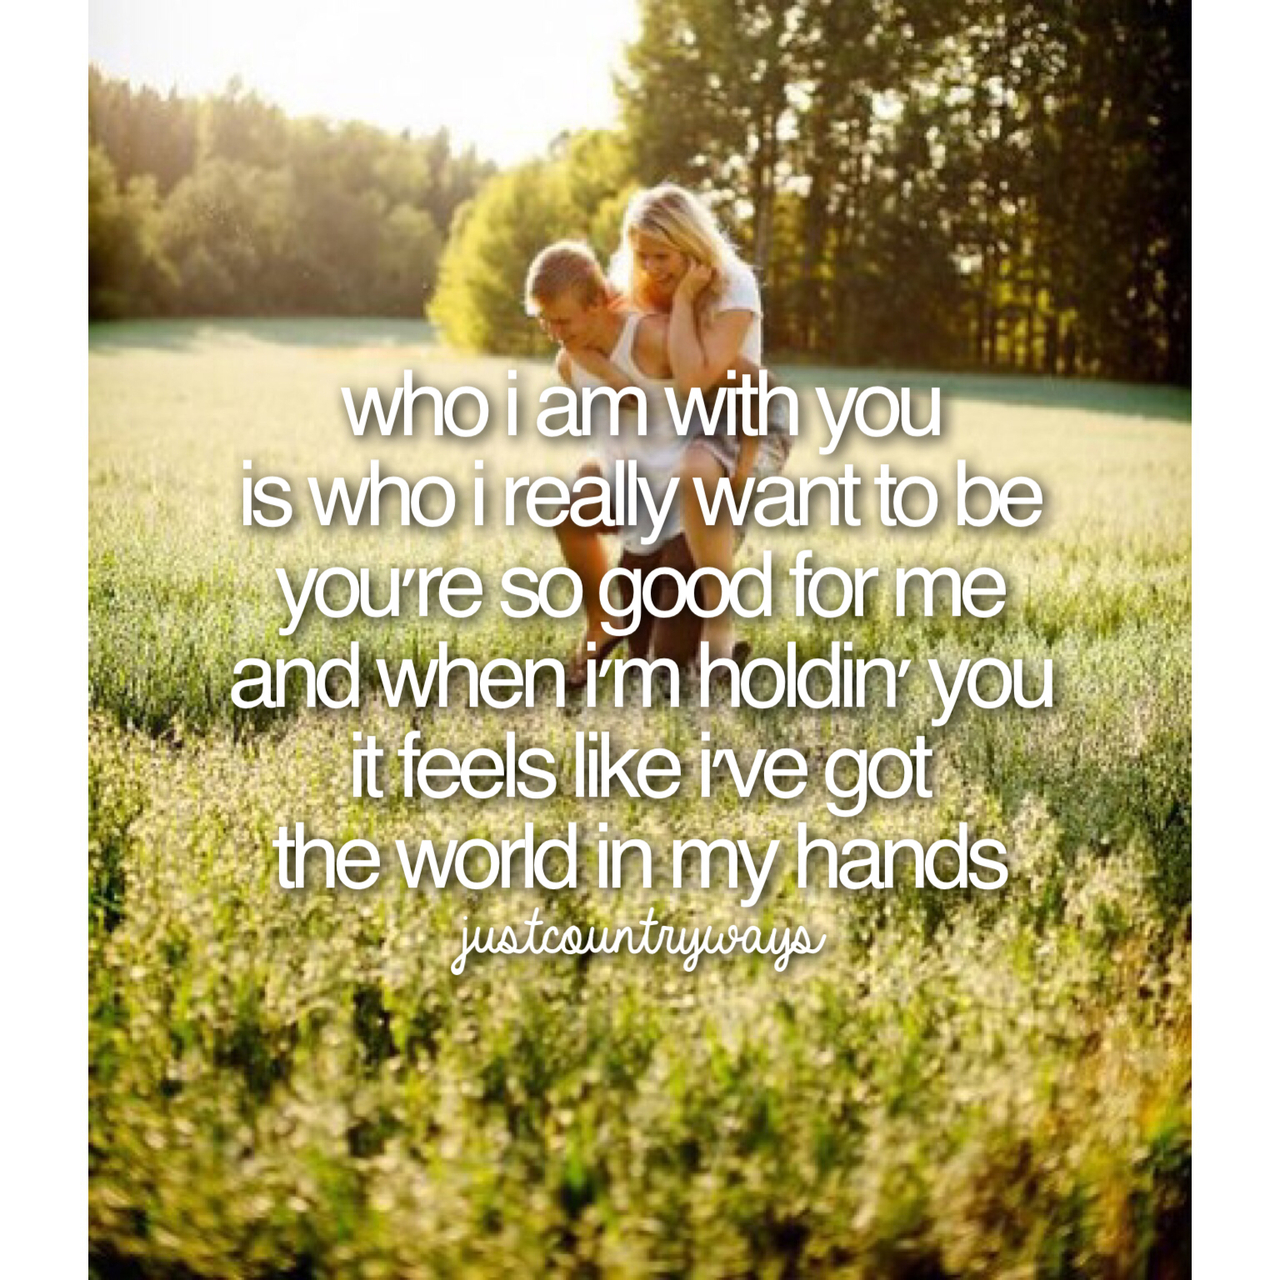 Uncategorized You Lyrics Chris Young who i am with you chris young on we heart it